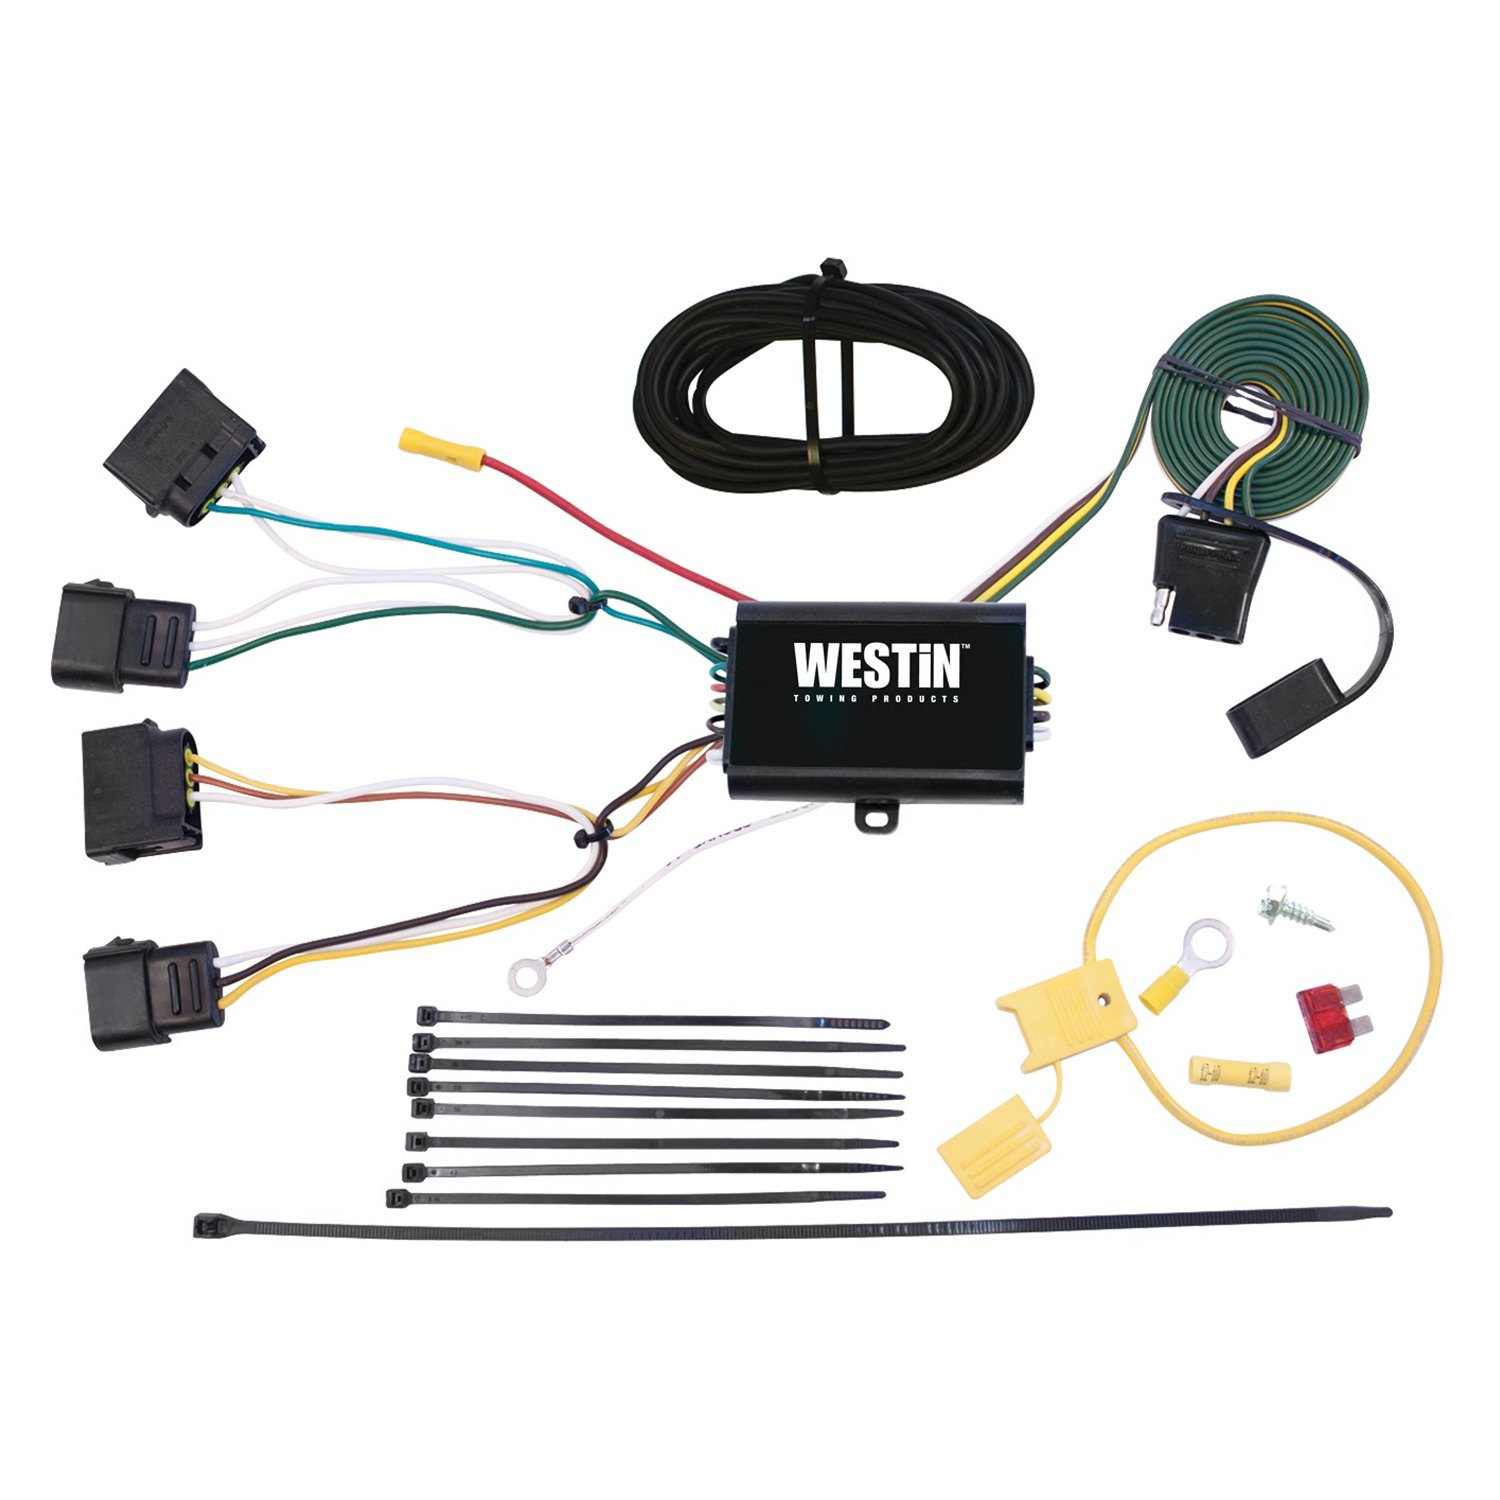 ford escape stereo wiring harness westin® - ford escape 2012 towing wiring harness ford escape towing wiring harness